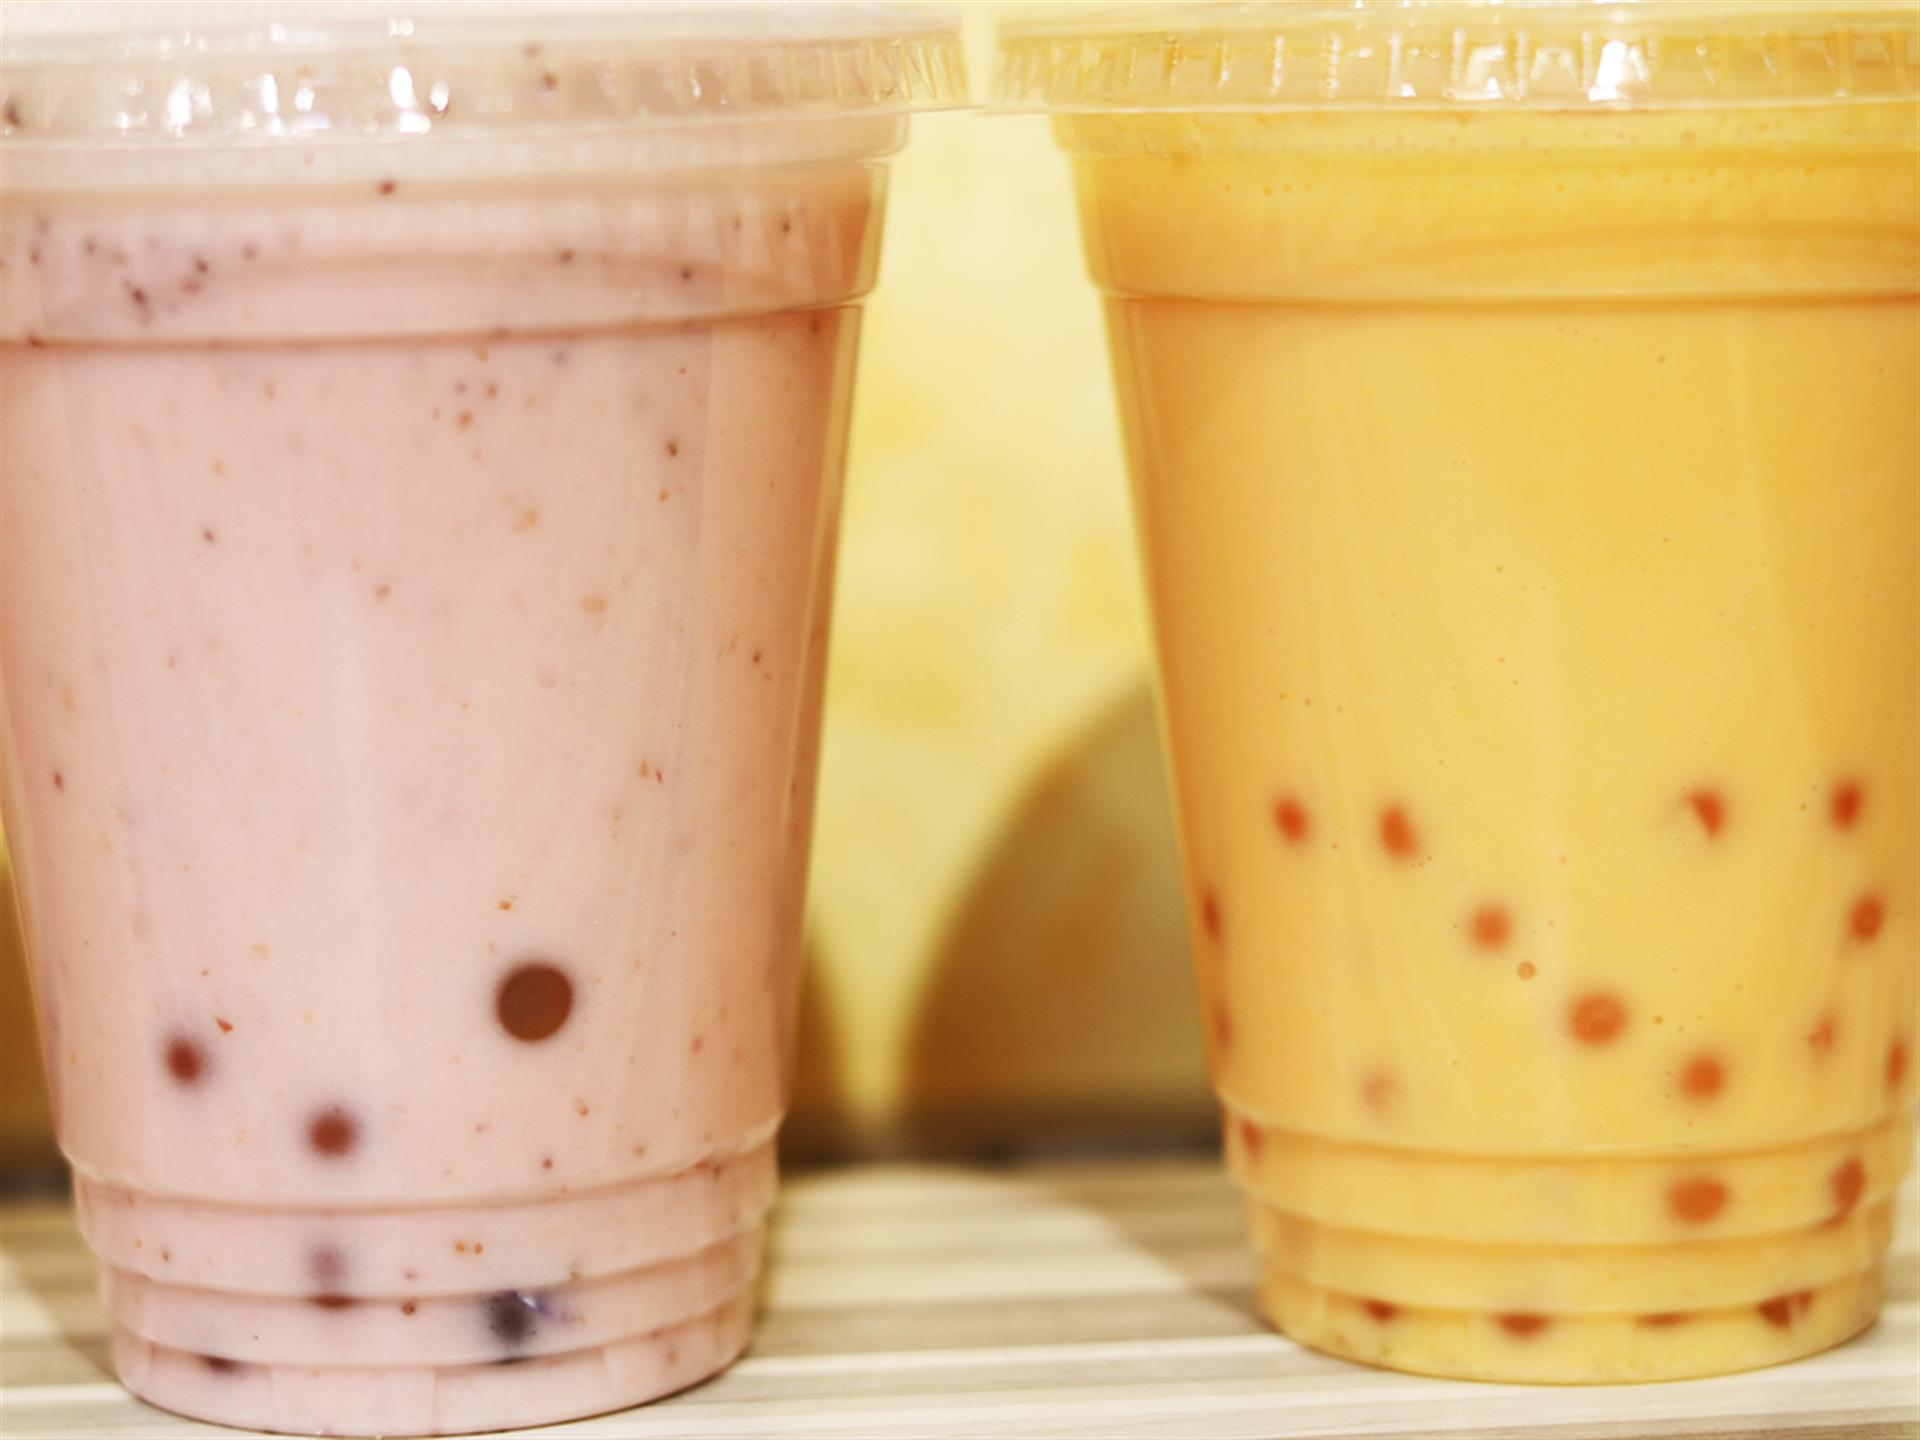 Two beverages